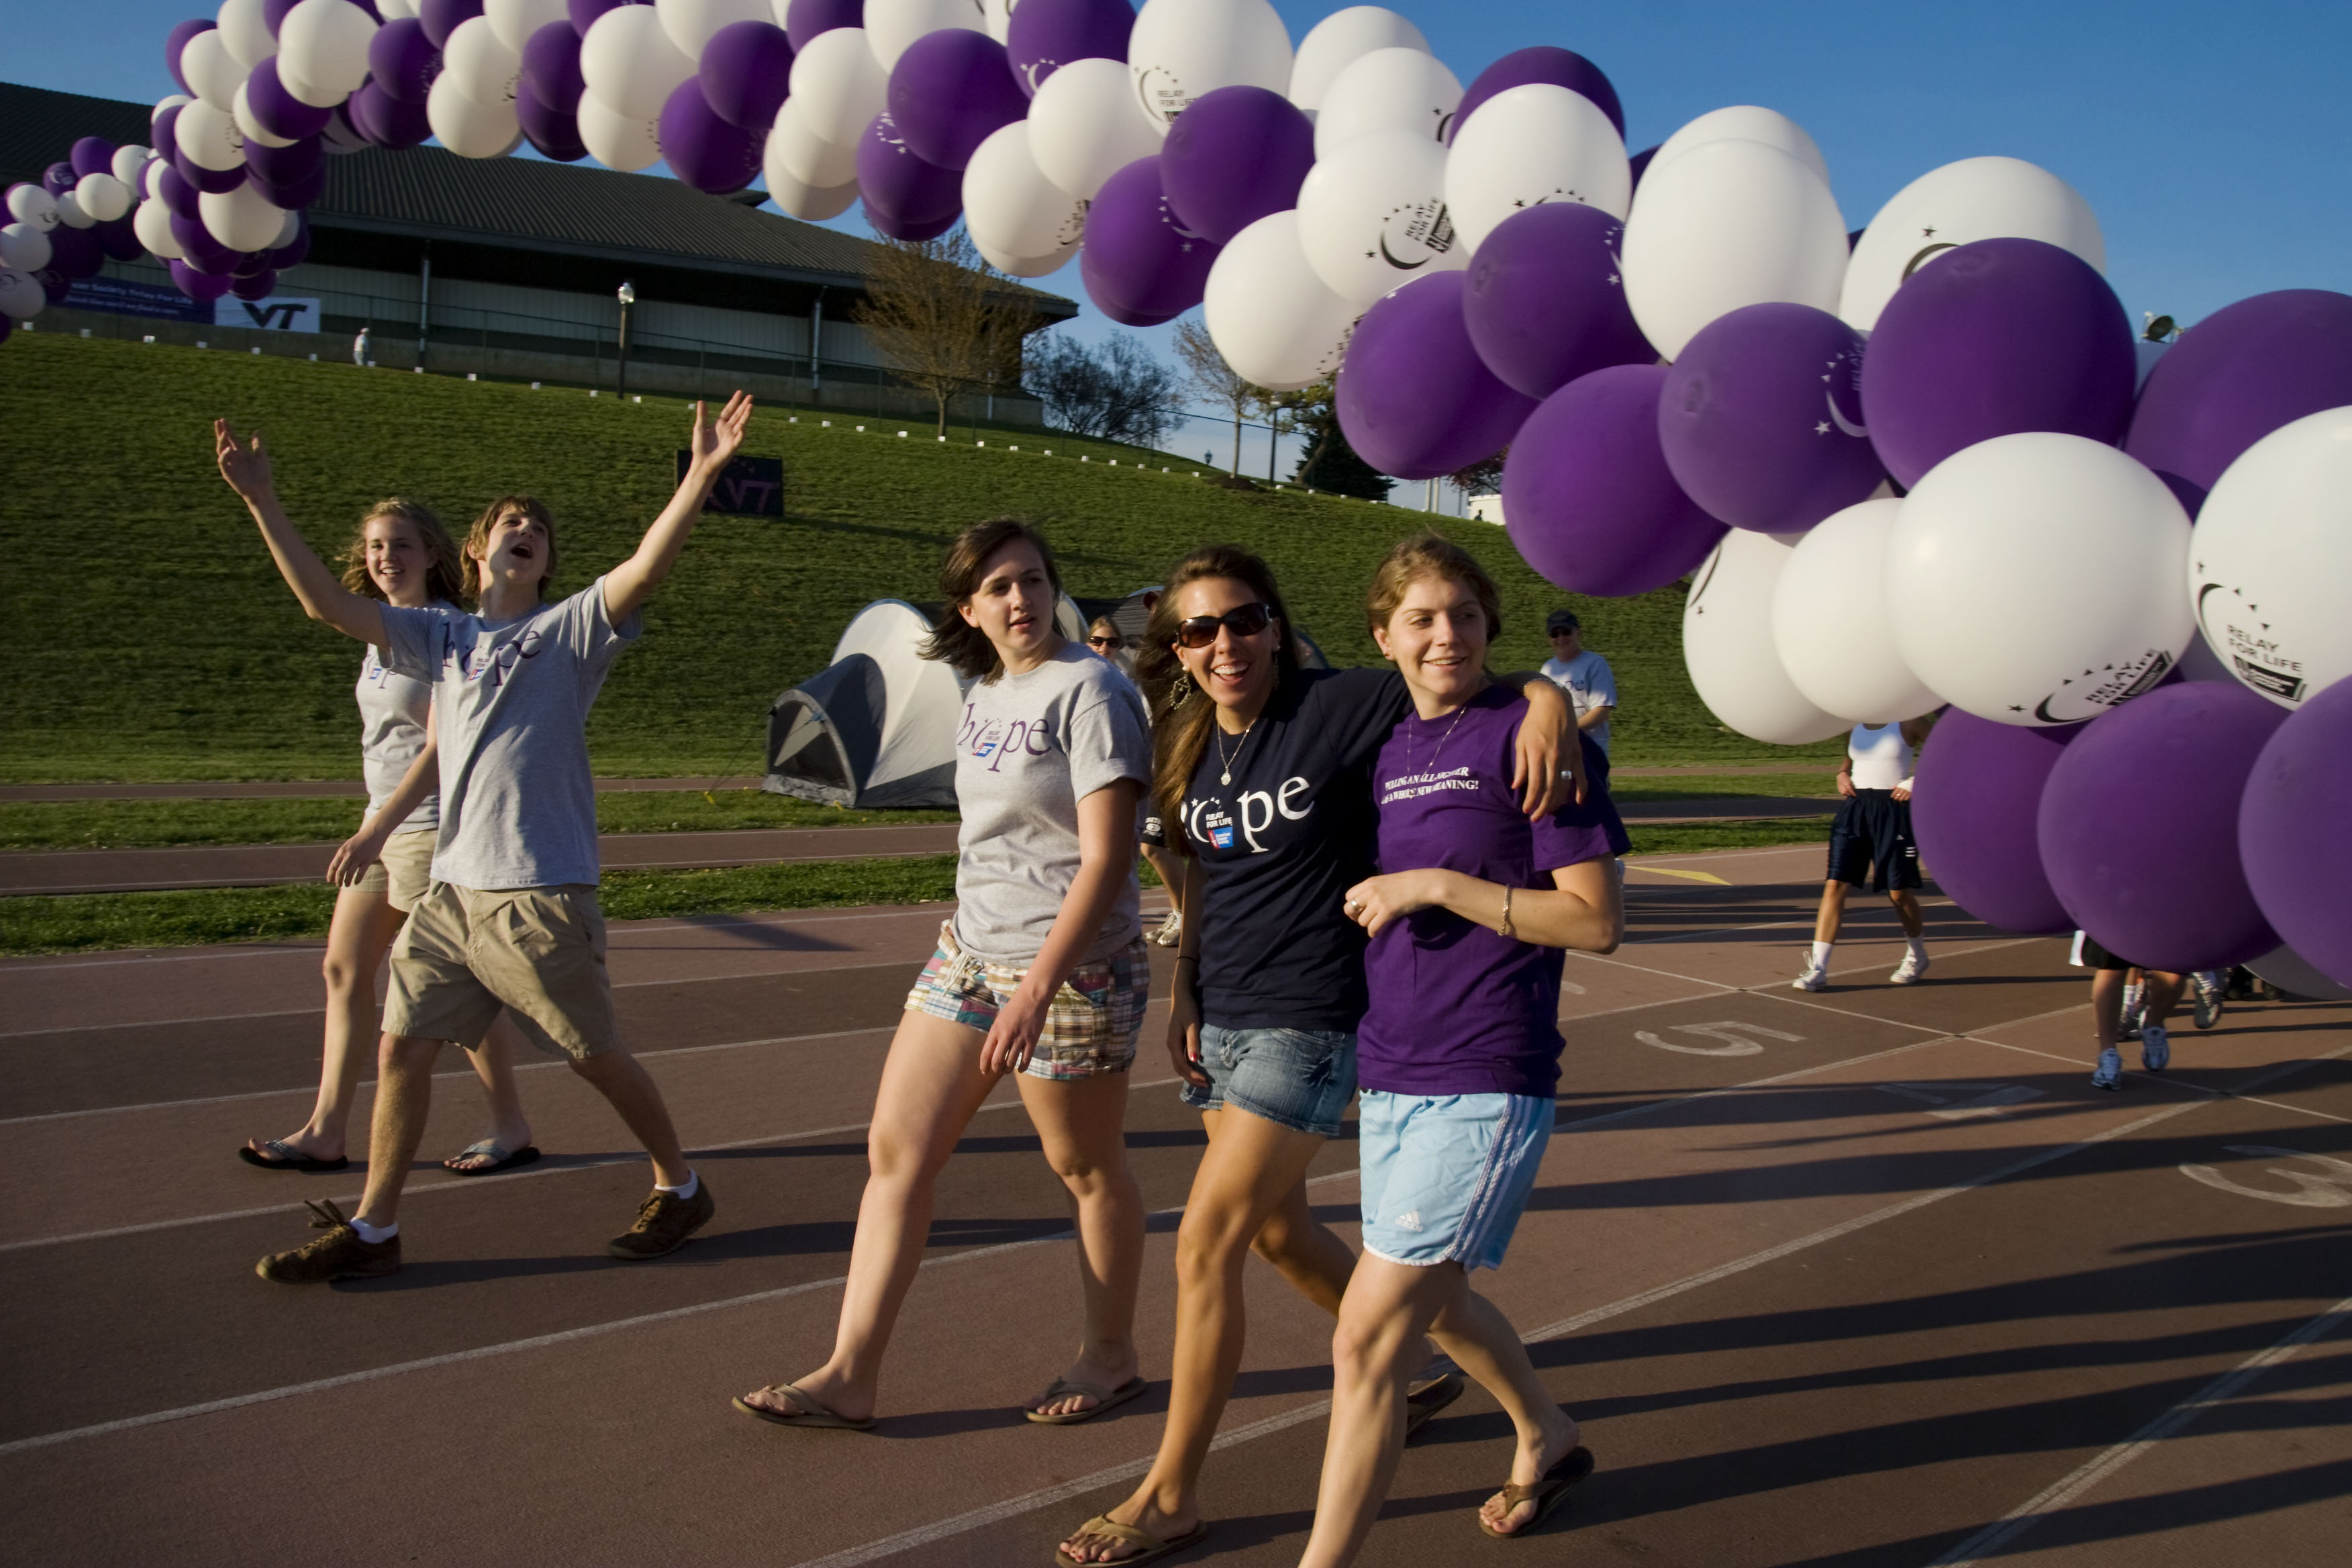 The 2010 Relay For Life at Virginia Tech is set for April 9.